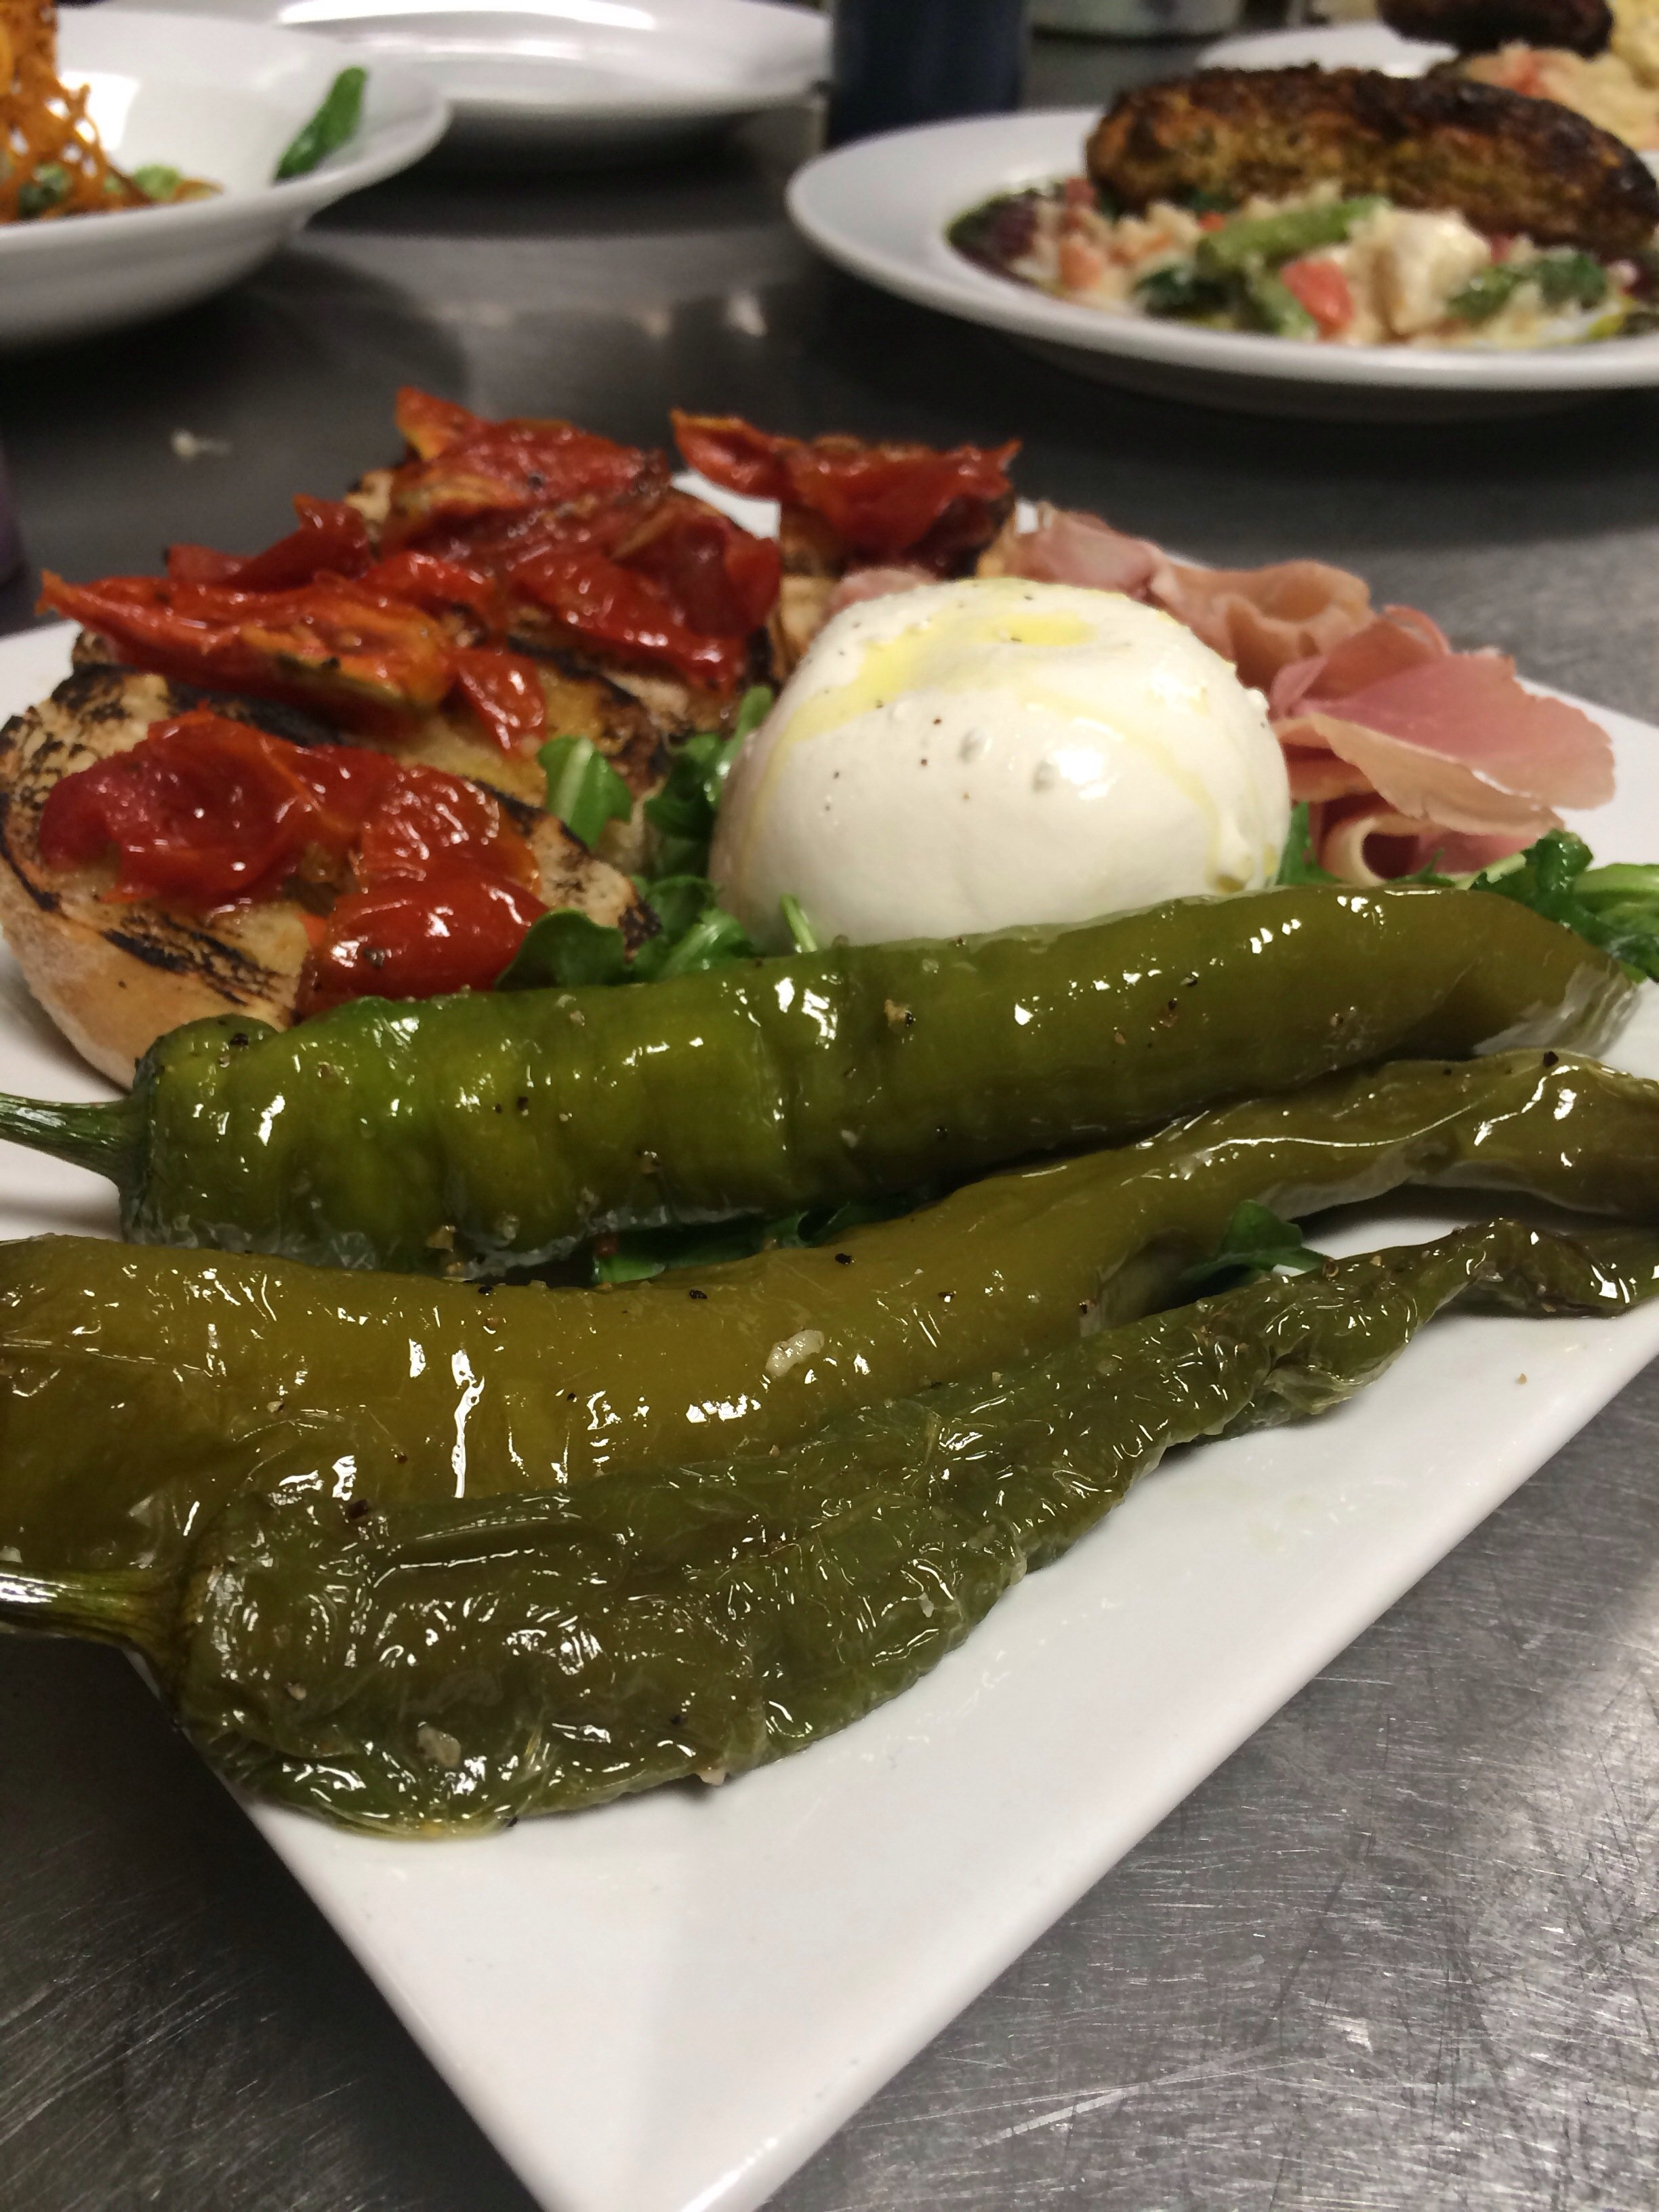 New for 2014: Summer Burrata Plate